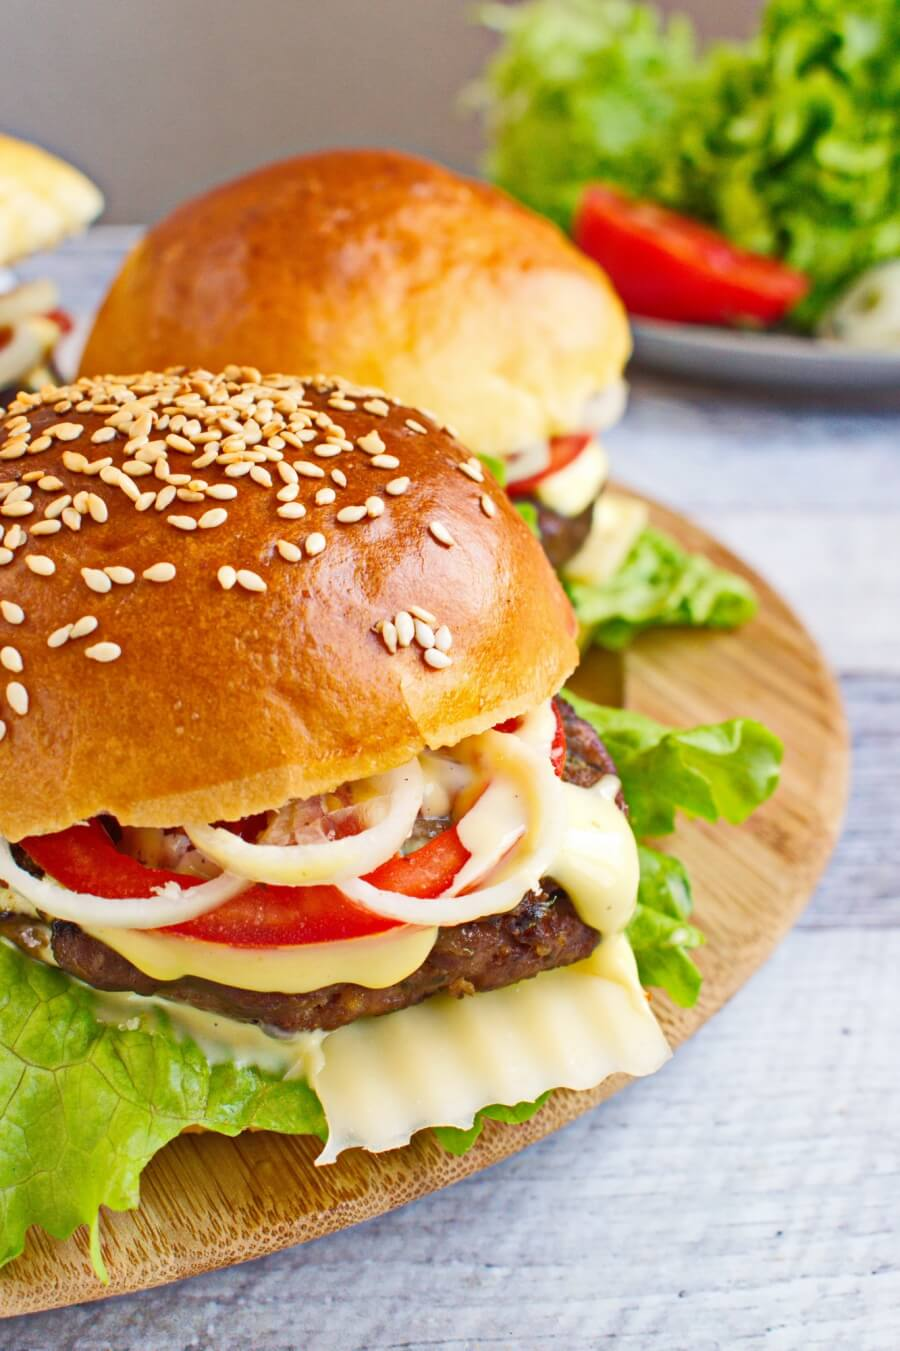 Easy Beef Burger Recipe Cook Me Recipes